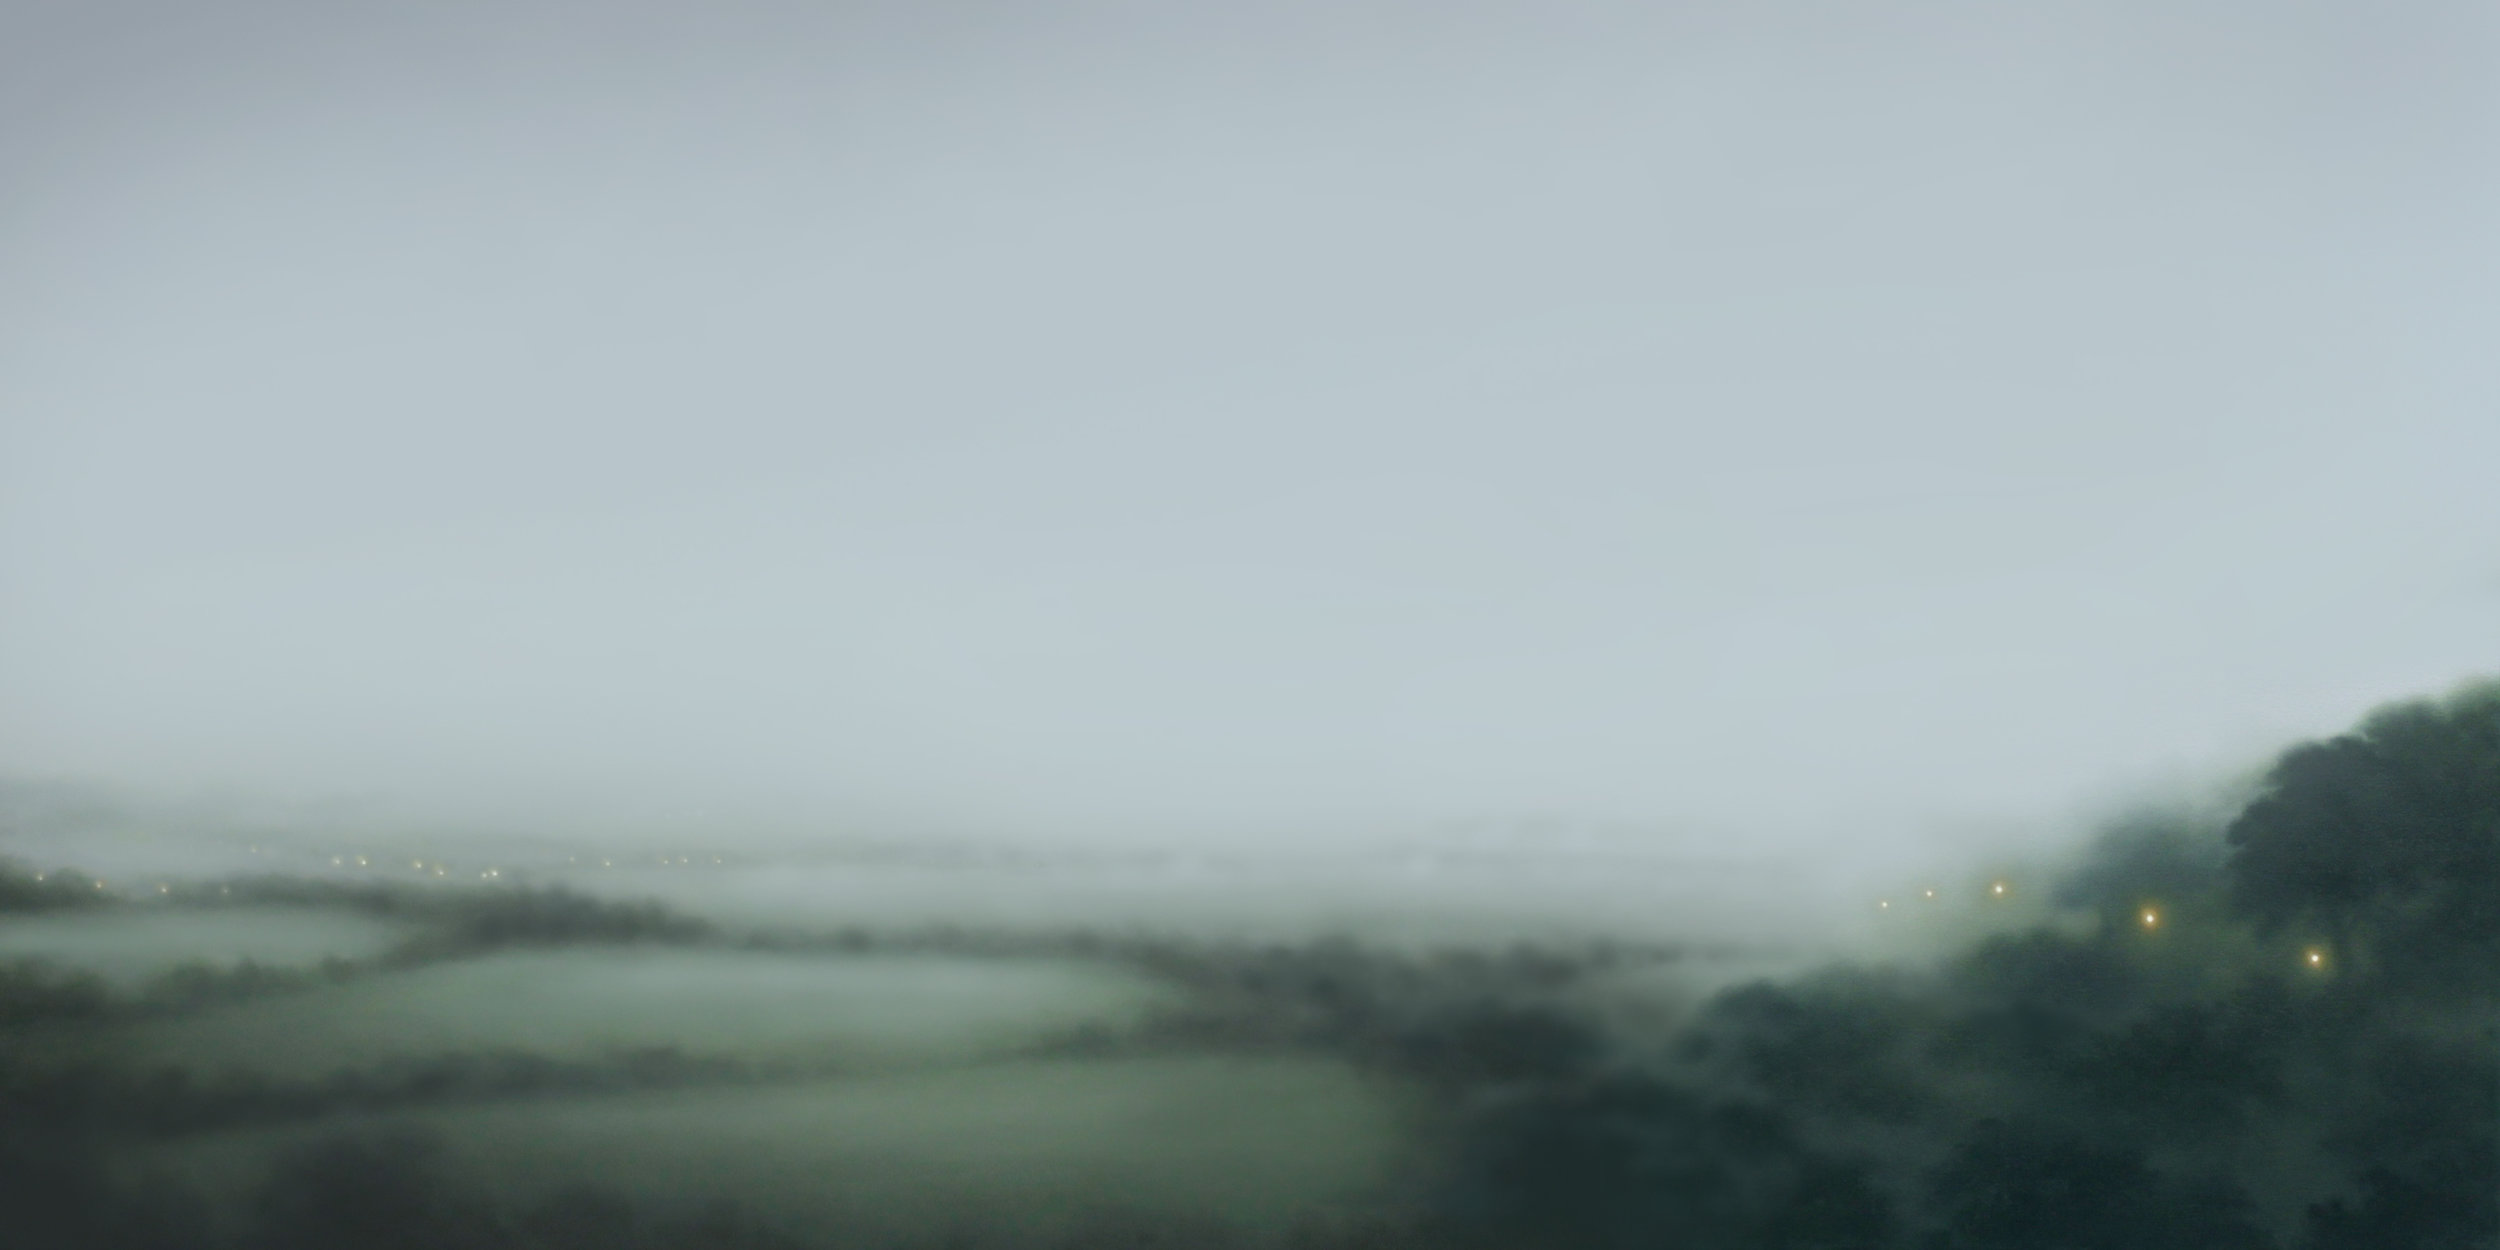 Once Upon A Time EDITION, archival pigment print on Hahnemühle German Etching, 60 x 110cm, Edition of 60